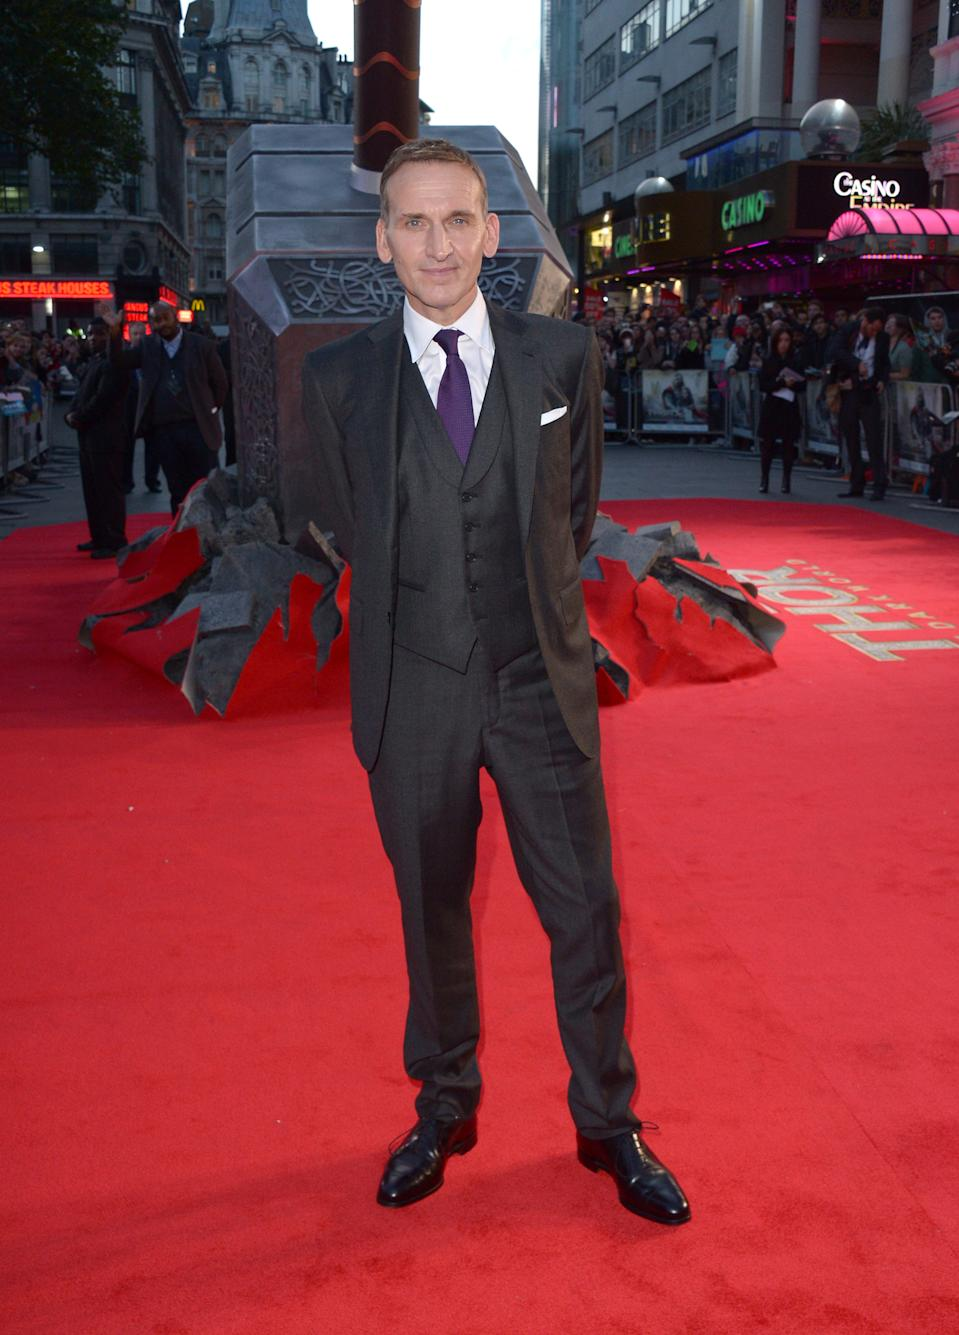 "Actor Christopher Eccleston arrives on the red carpet for the World Premiere of ""Thor: The Dark World"" in Leicester Square, London, on Tuesday Oct. 22, 2013. (Photo by Jon Furniss/Invision/AP Images)"